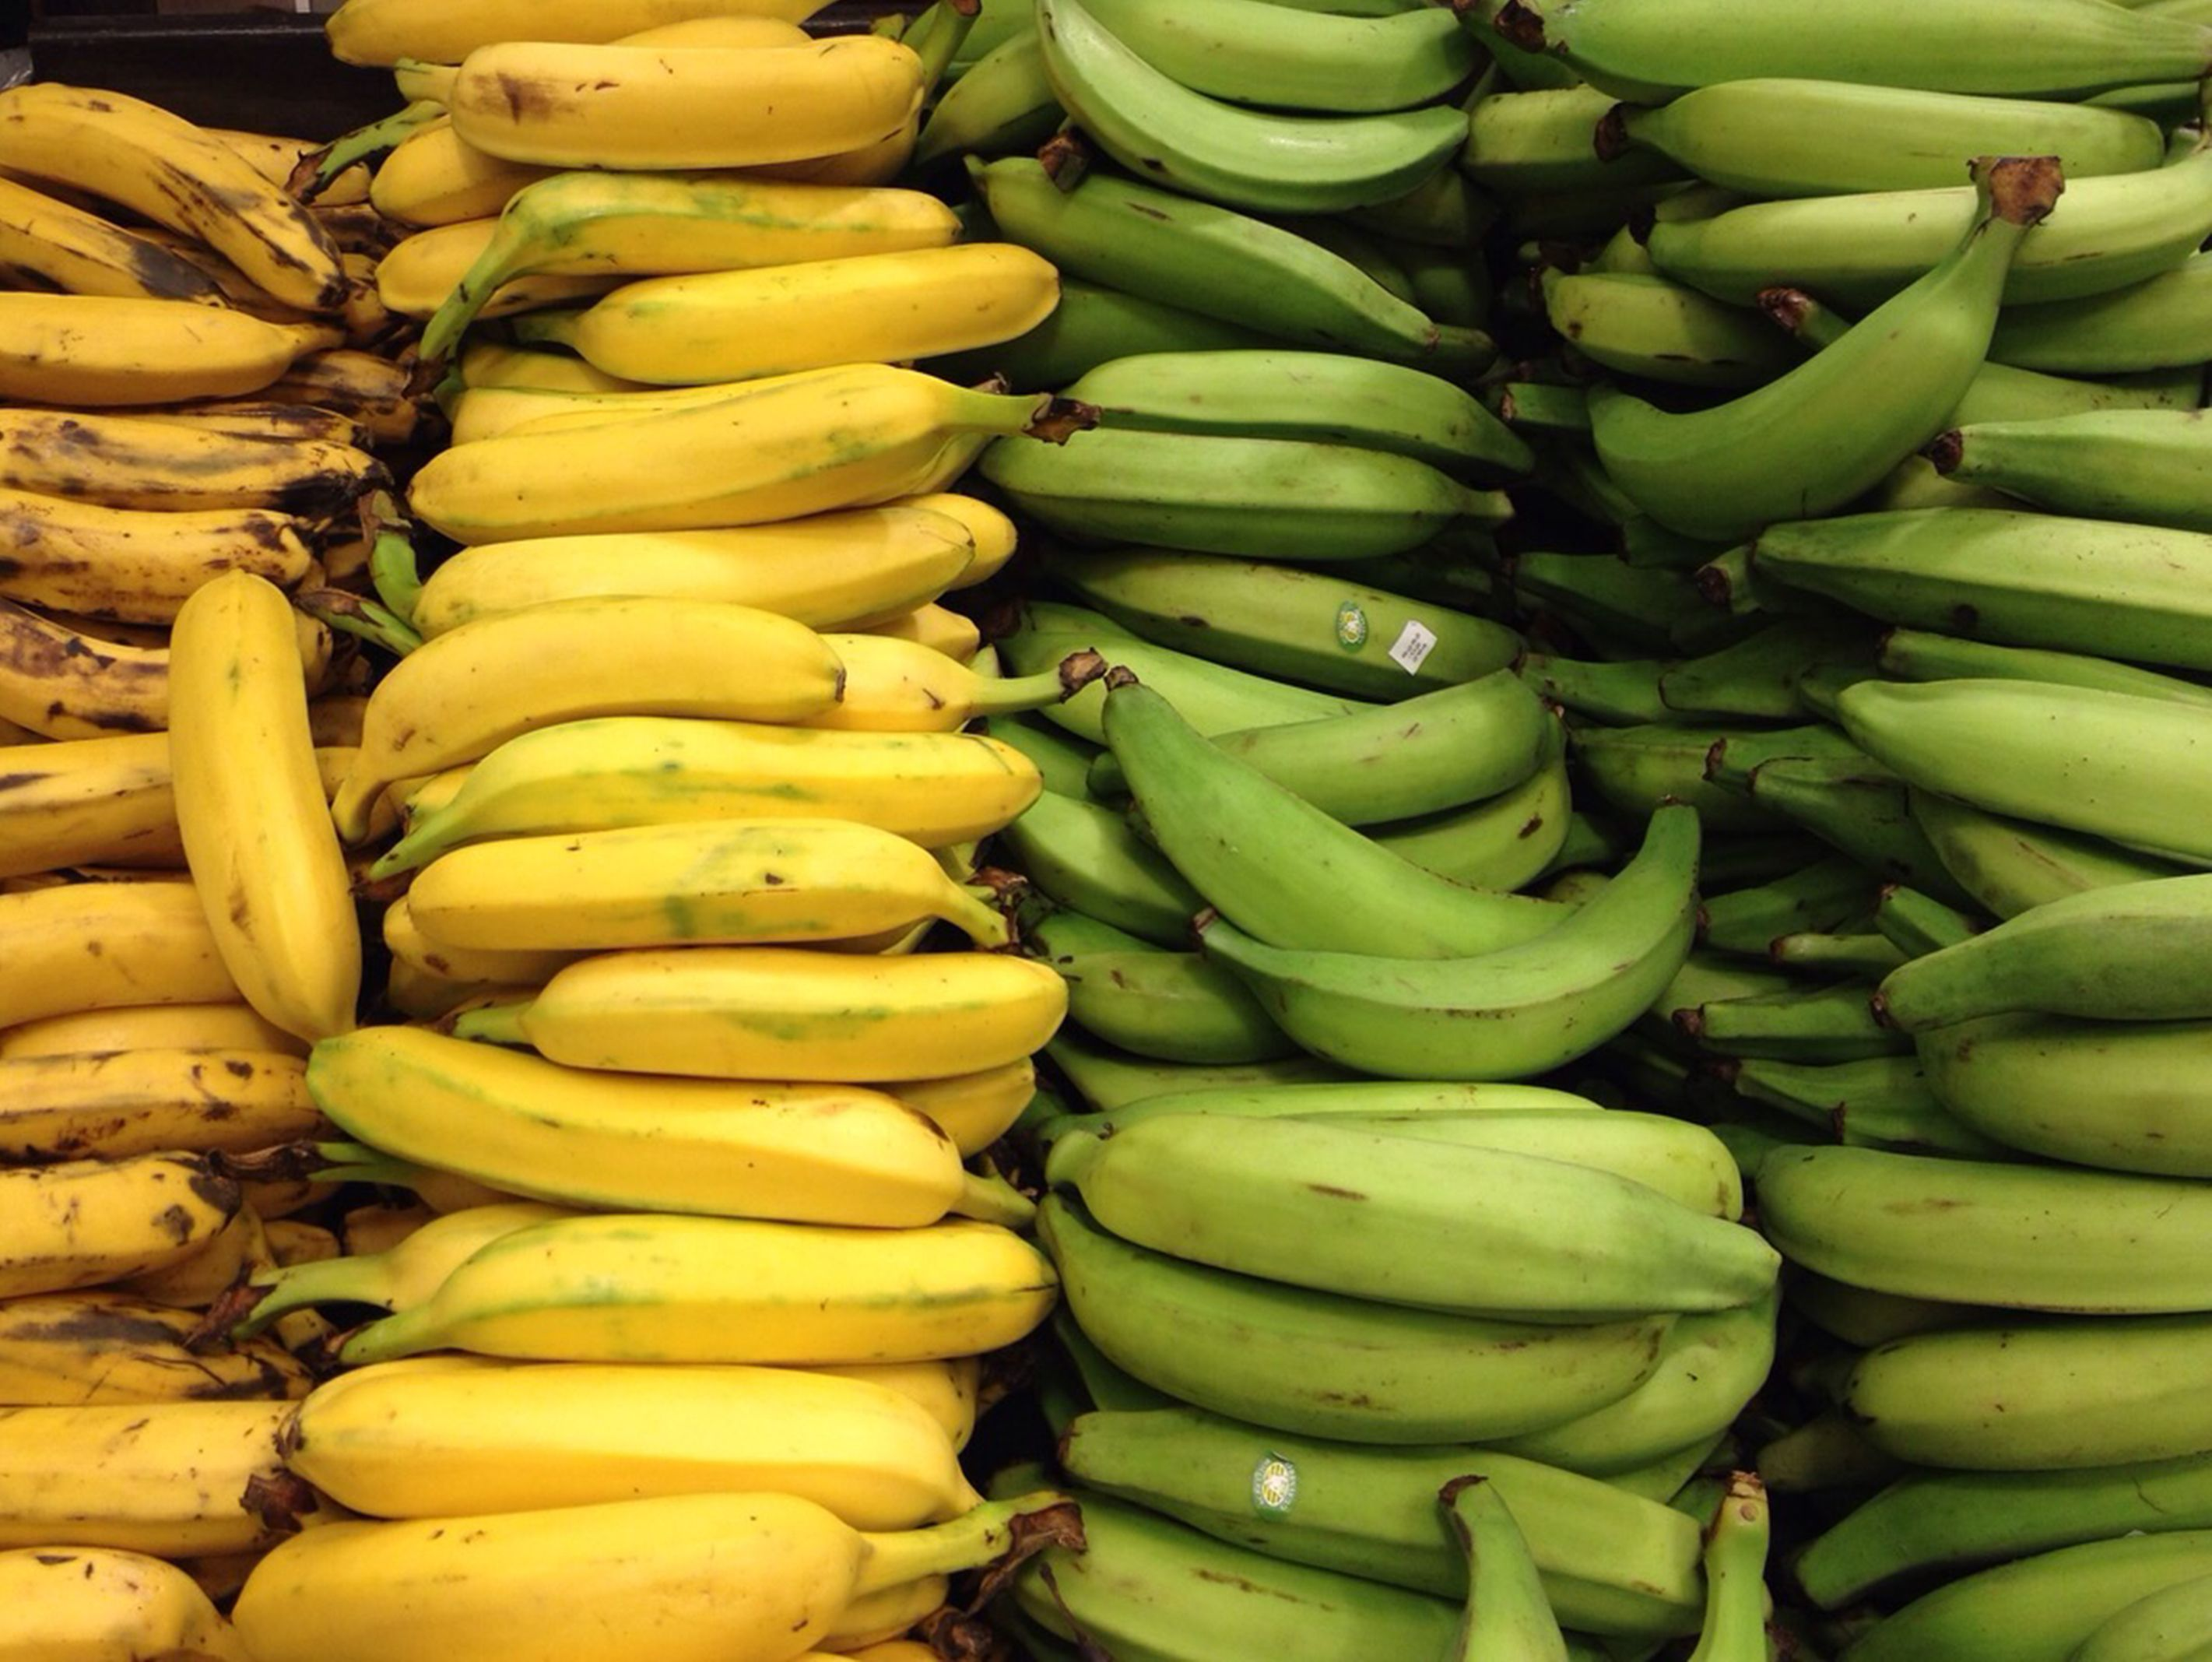 39++ What type of fruit is a banana info